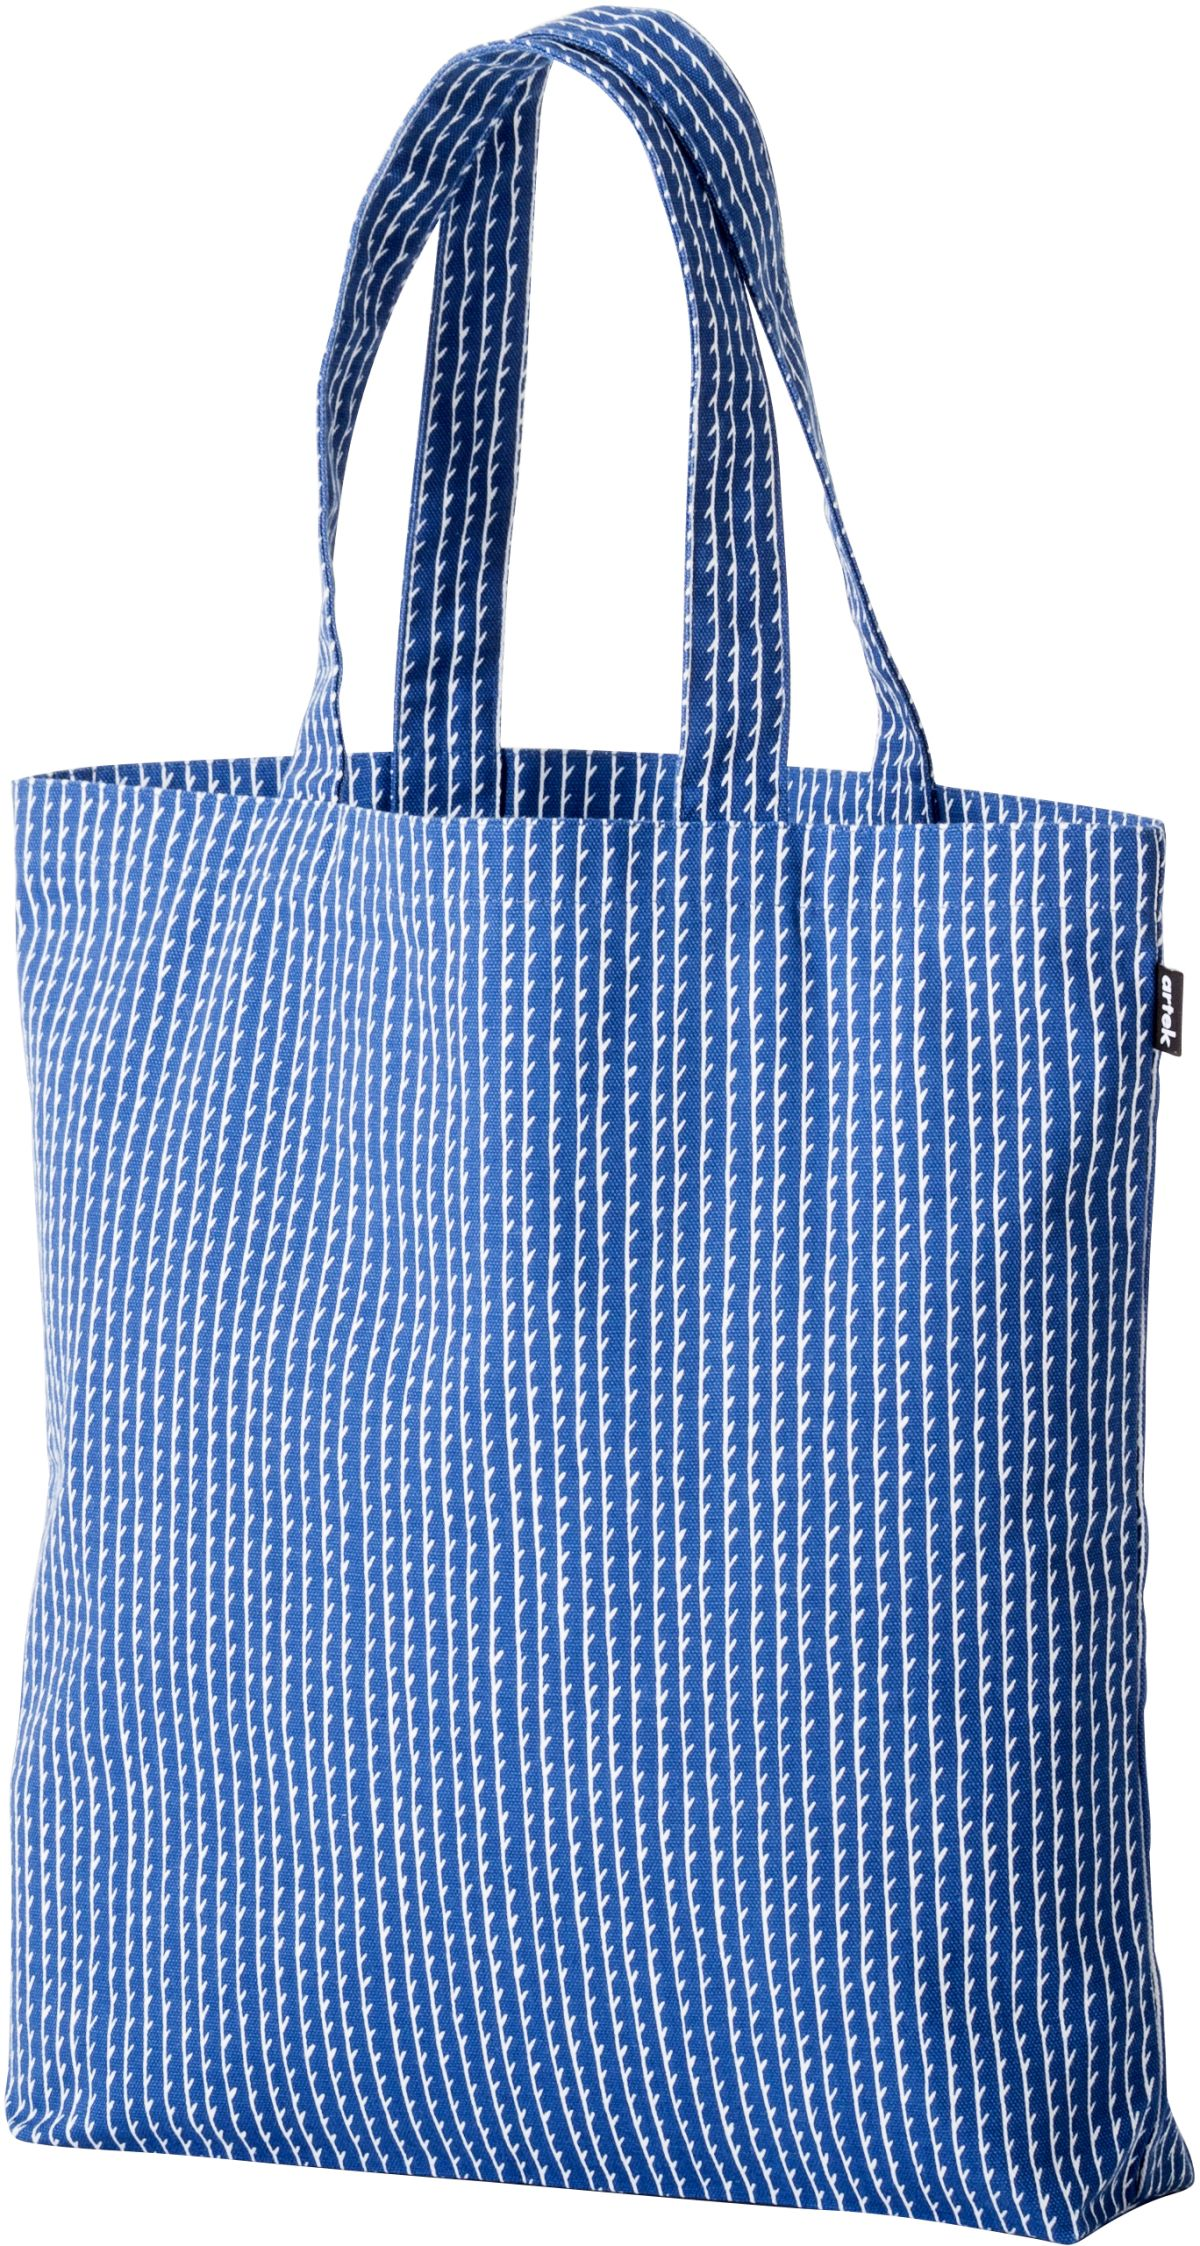 Rivi Canvas Bag blue